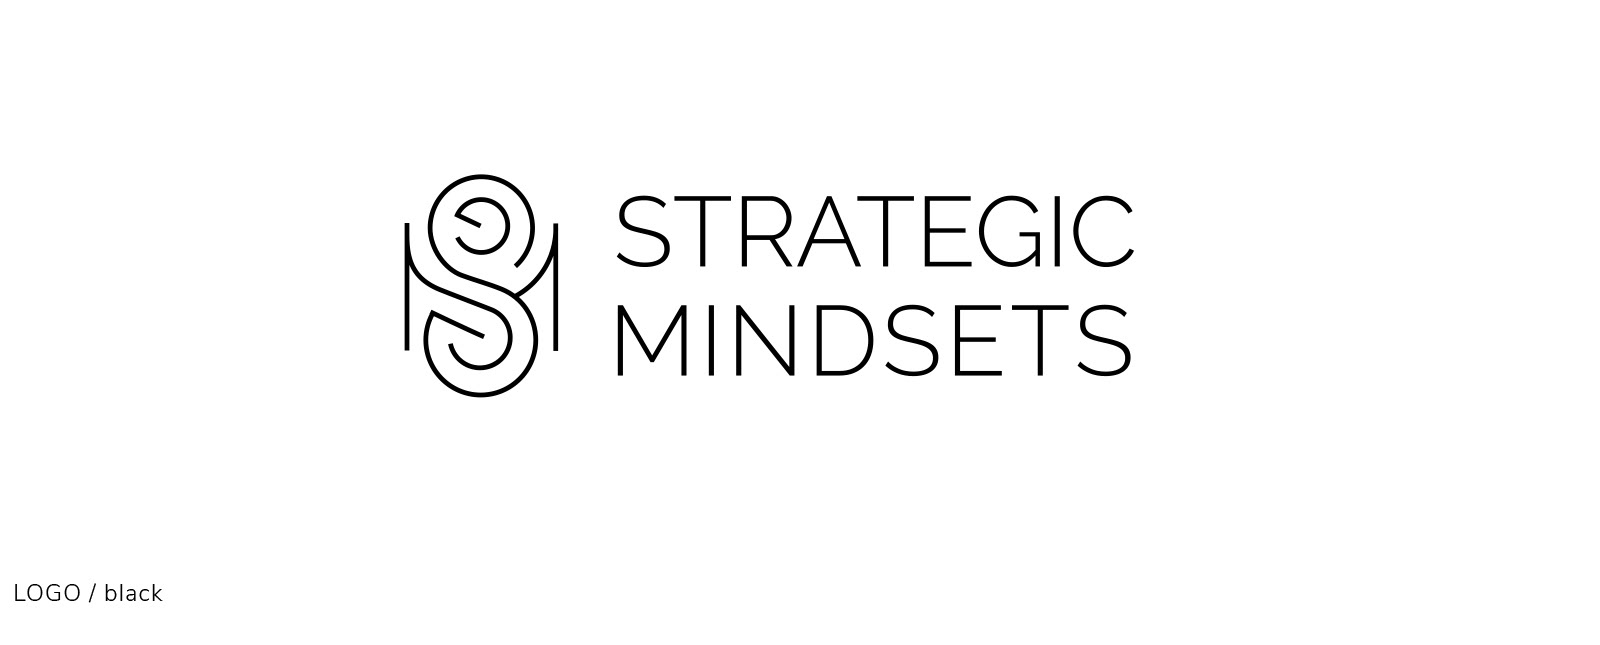 the-collective-one-strategic-mindsets-6